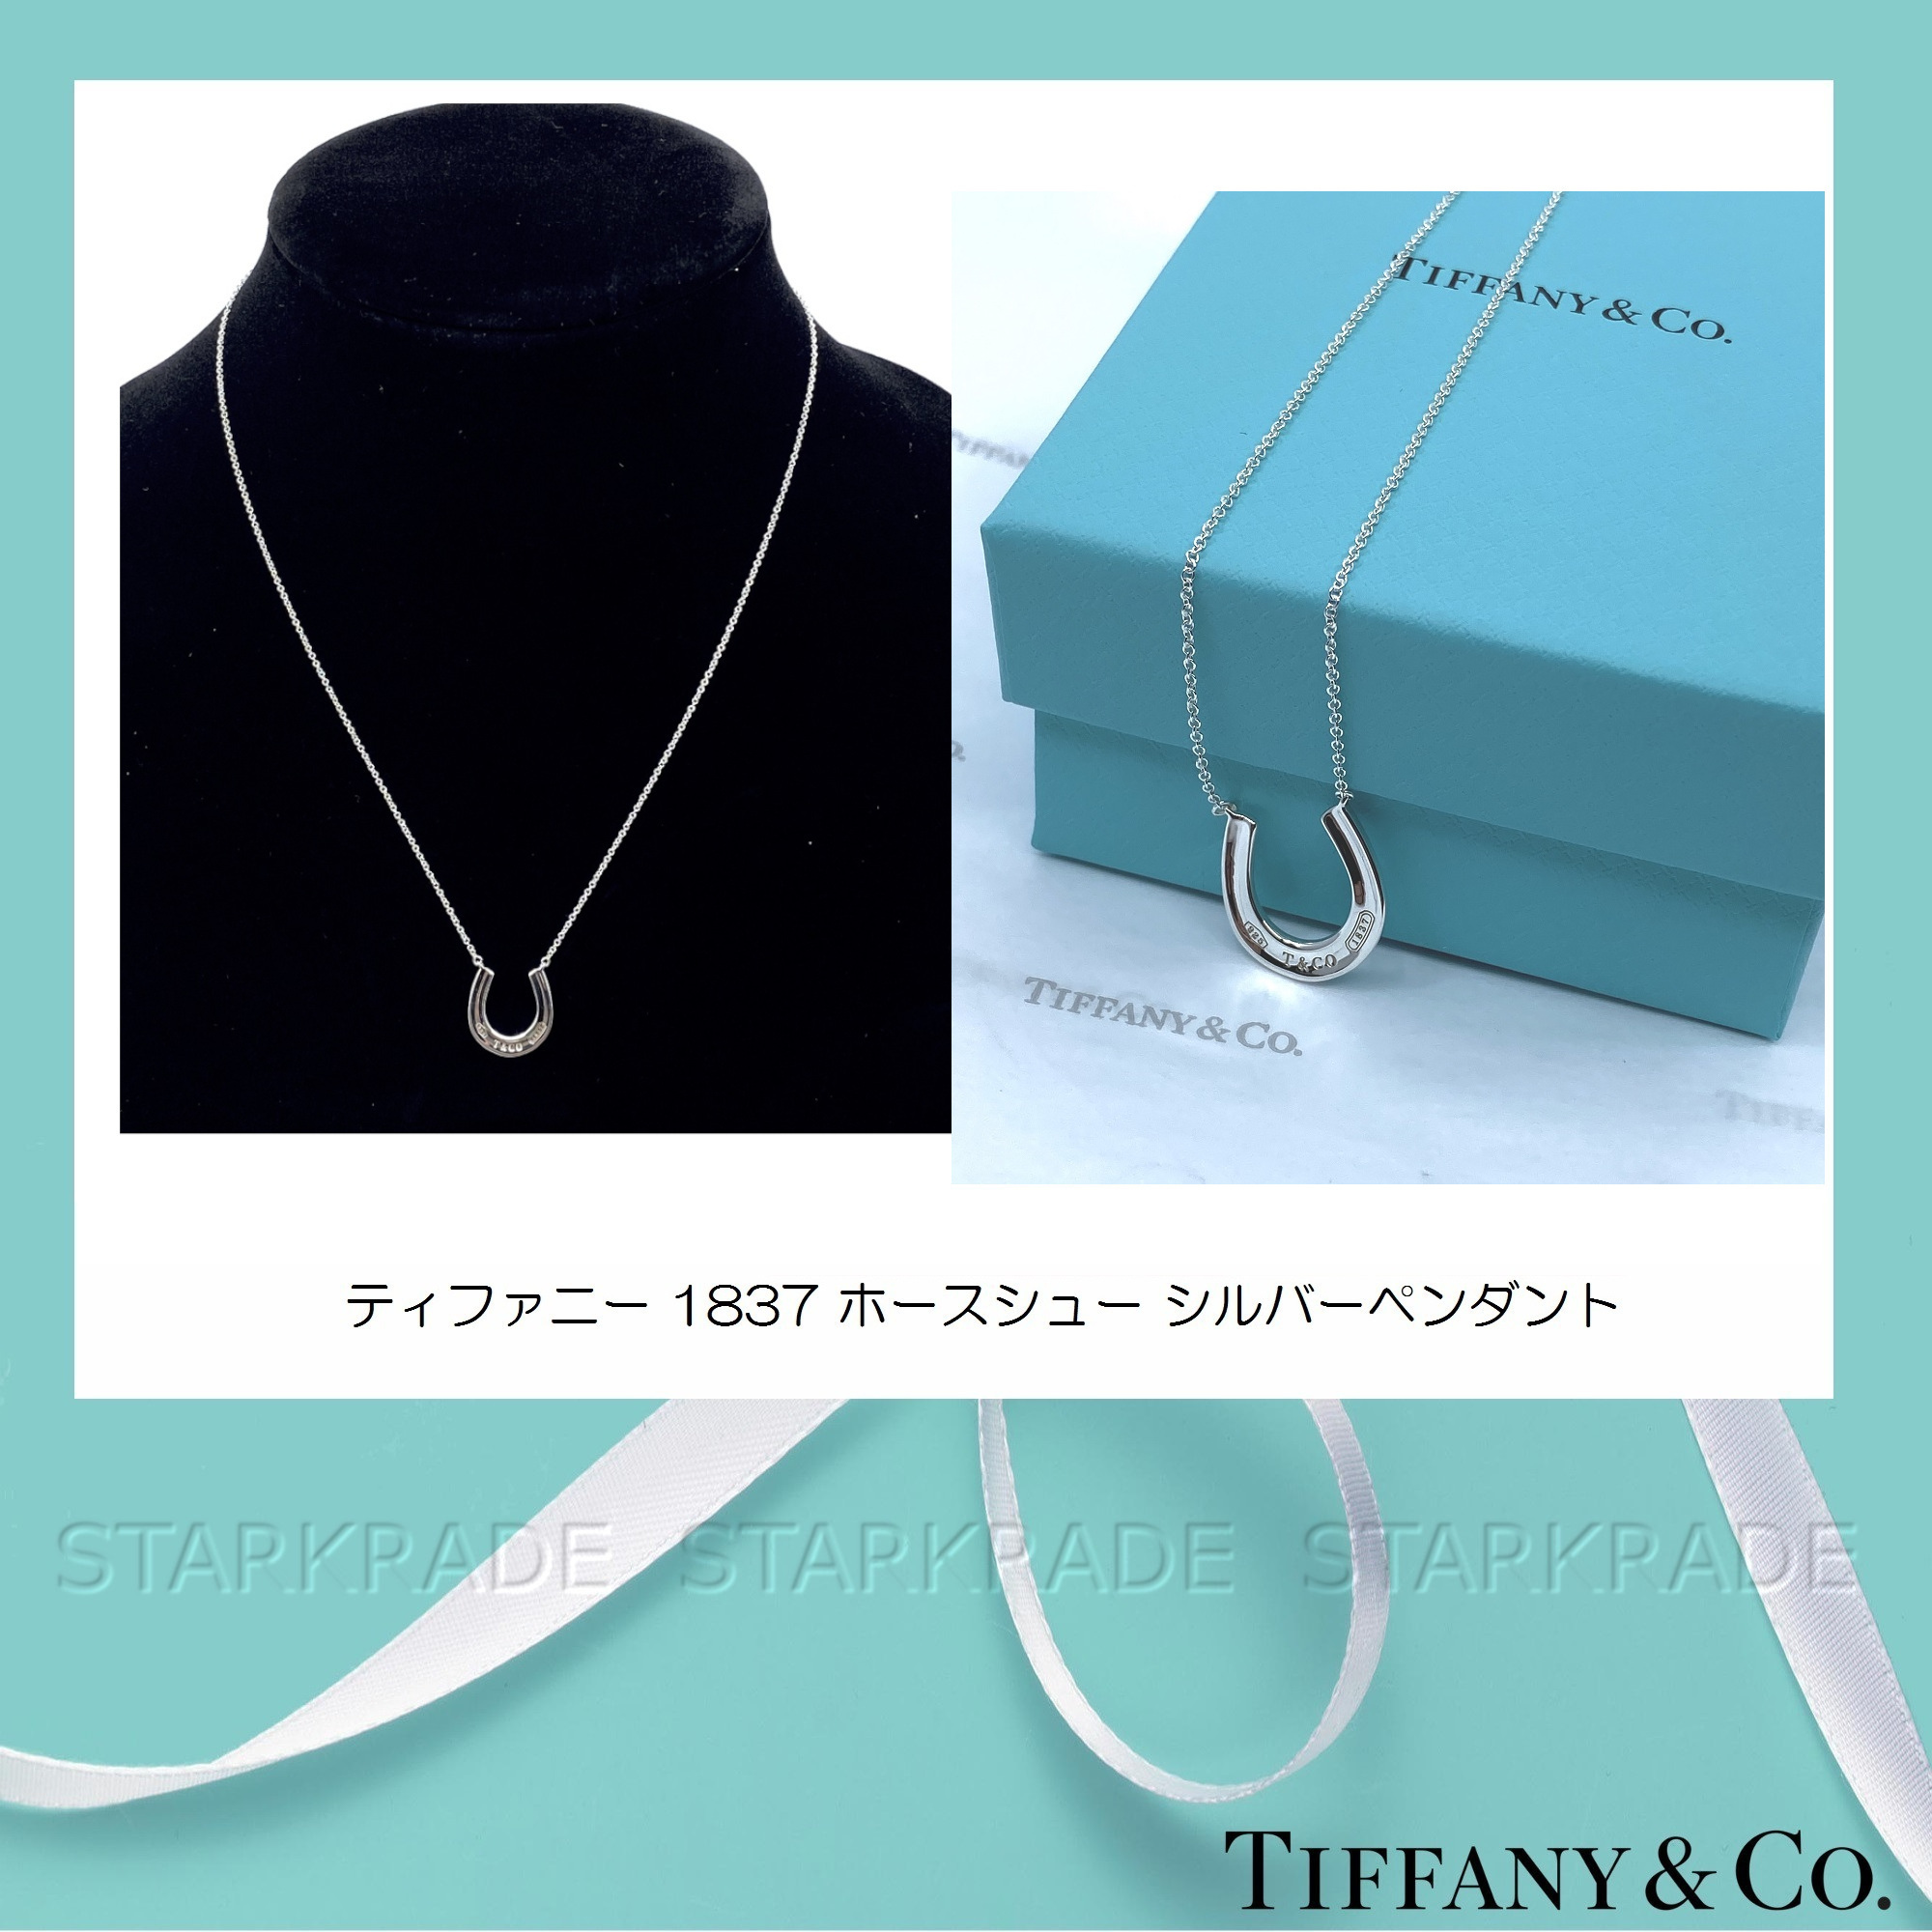 shop de beers tiffany & co